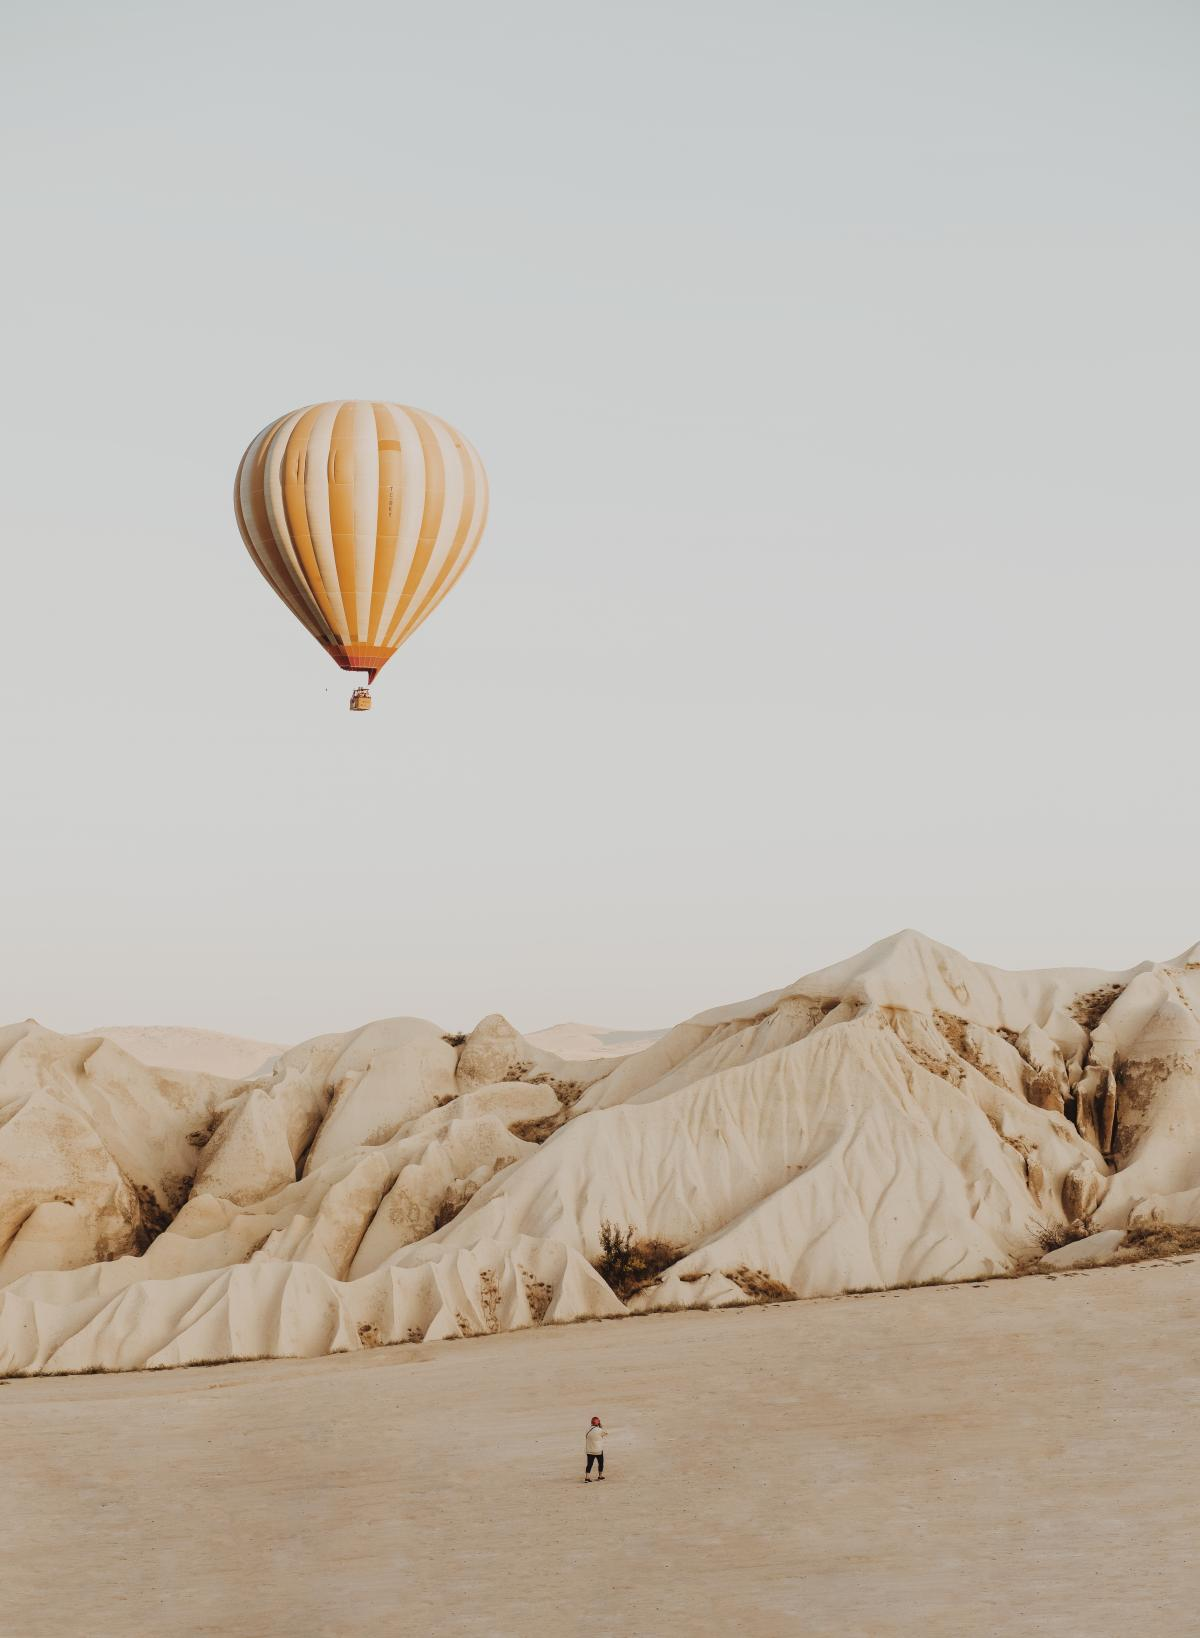 Person Standing on Desert Front of Hot Air Balloon